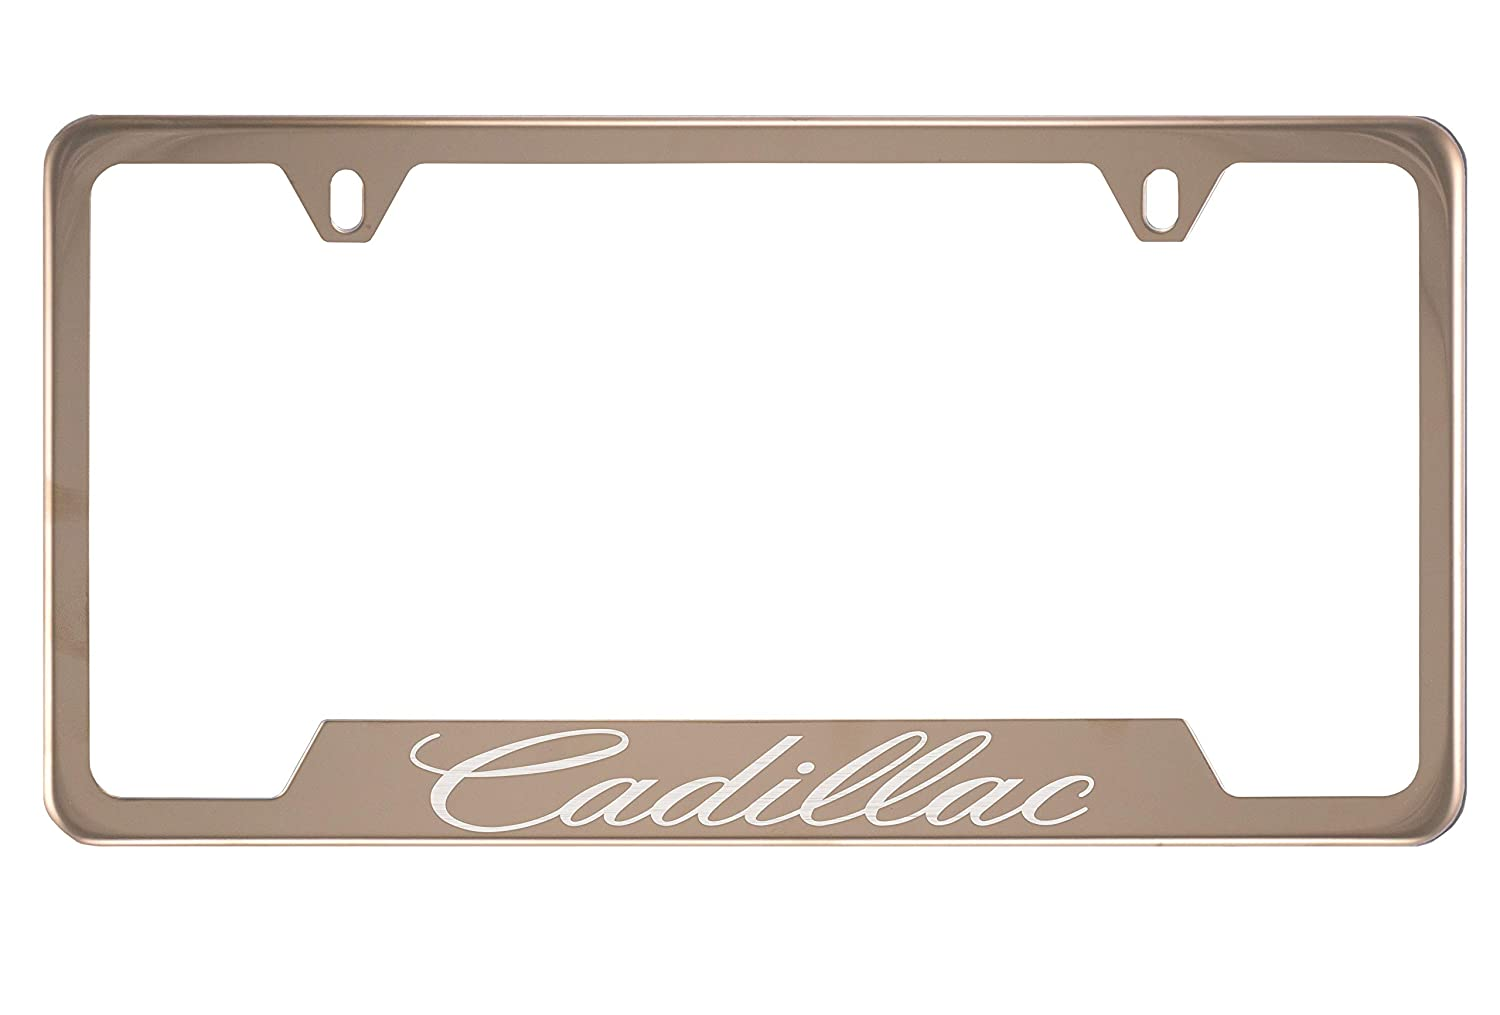 Cadillac Mirror Champagne Gold License Plate Frame (Zinc) PCR